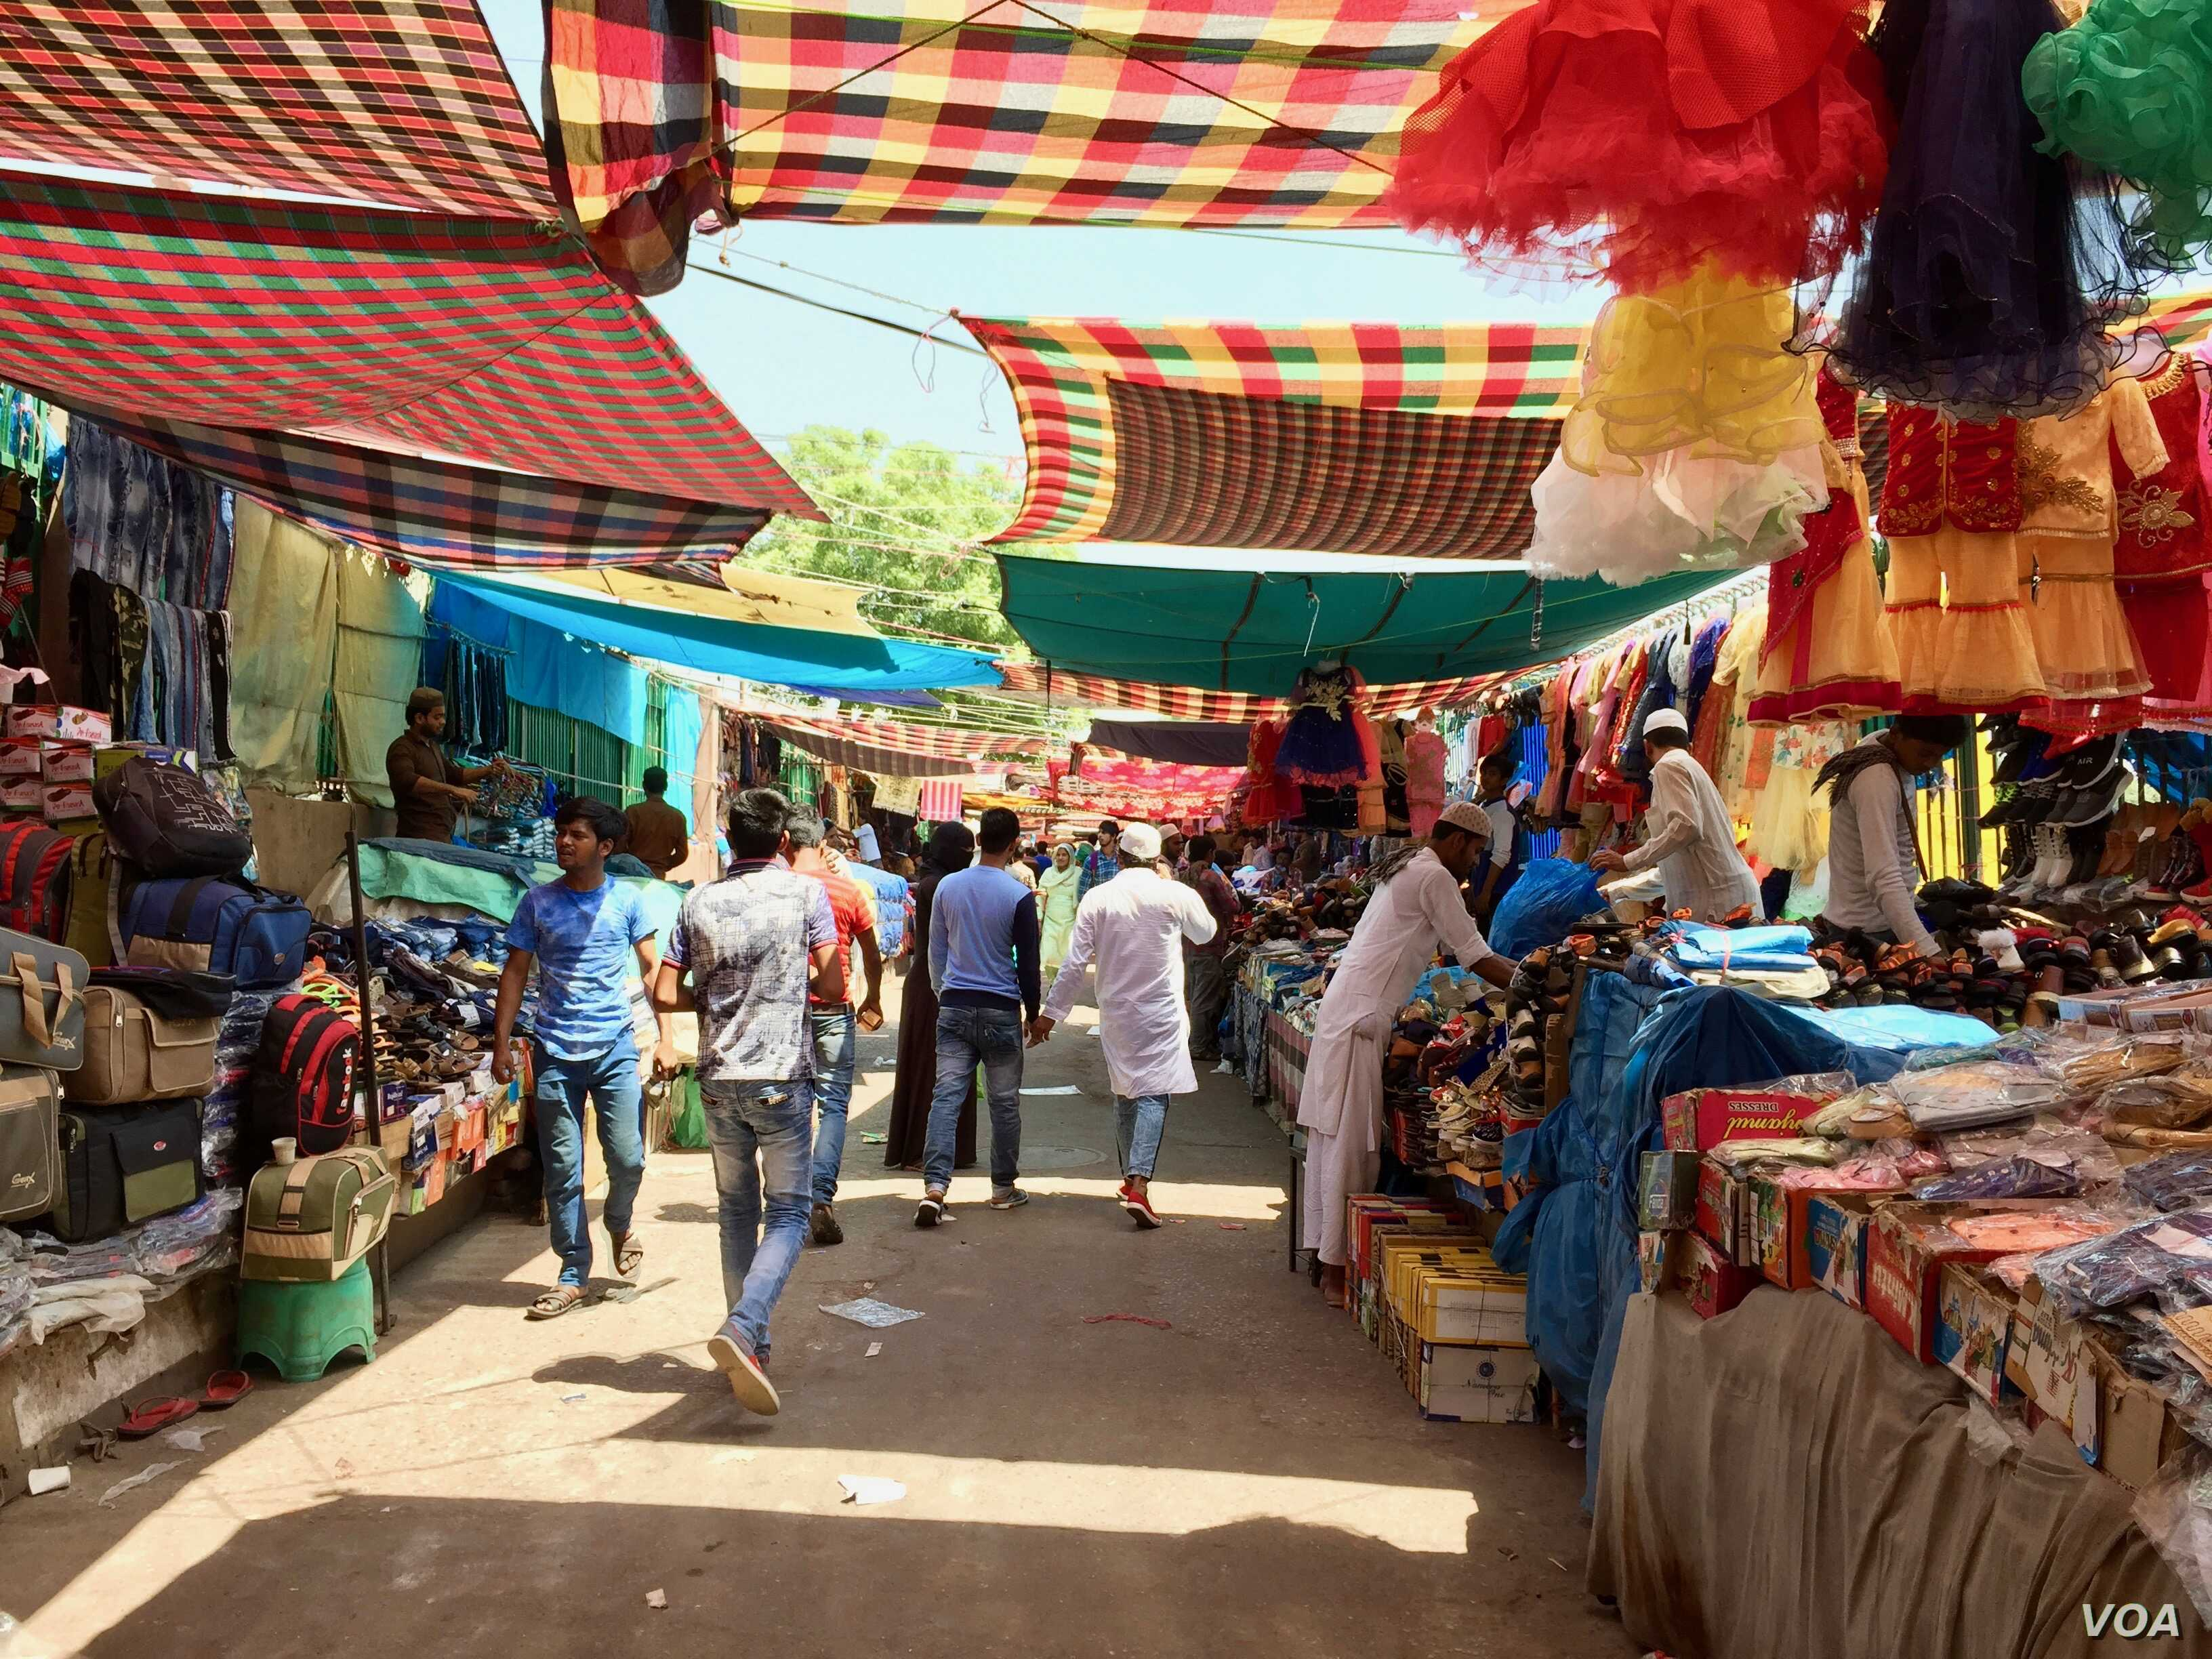 Despite the heat, shoppers throng a colorful market near an iconic Jama Masjid mosque in the Indian capital.